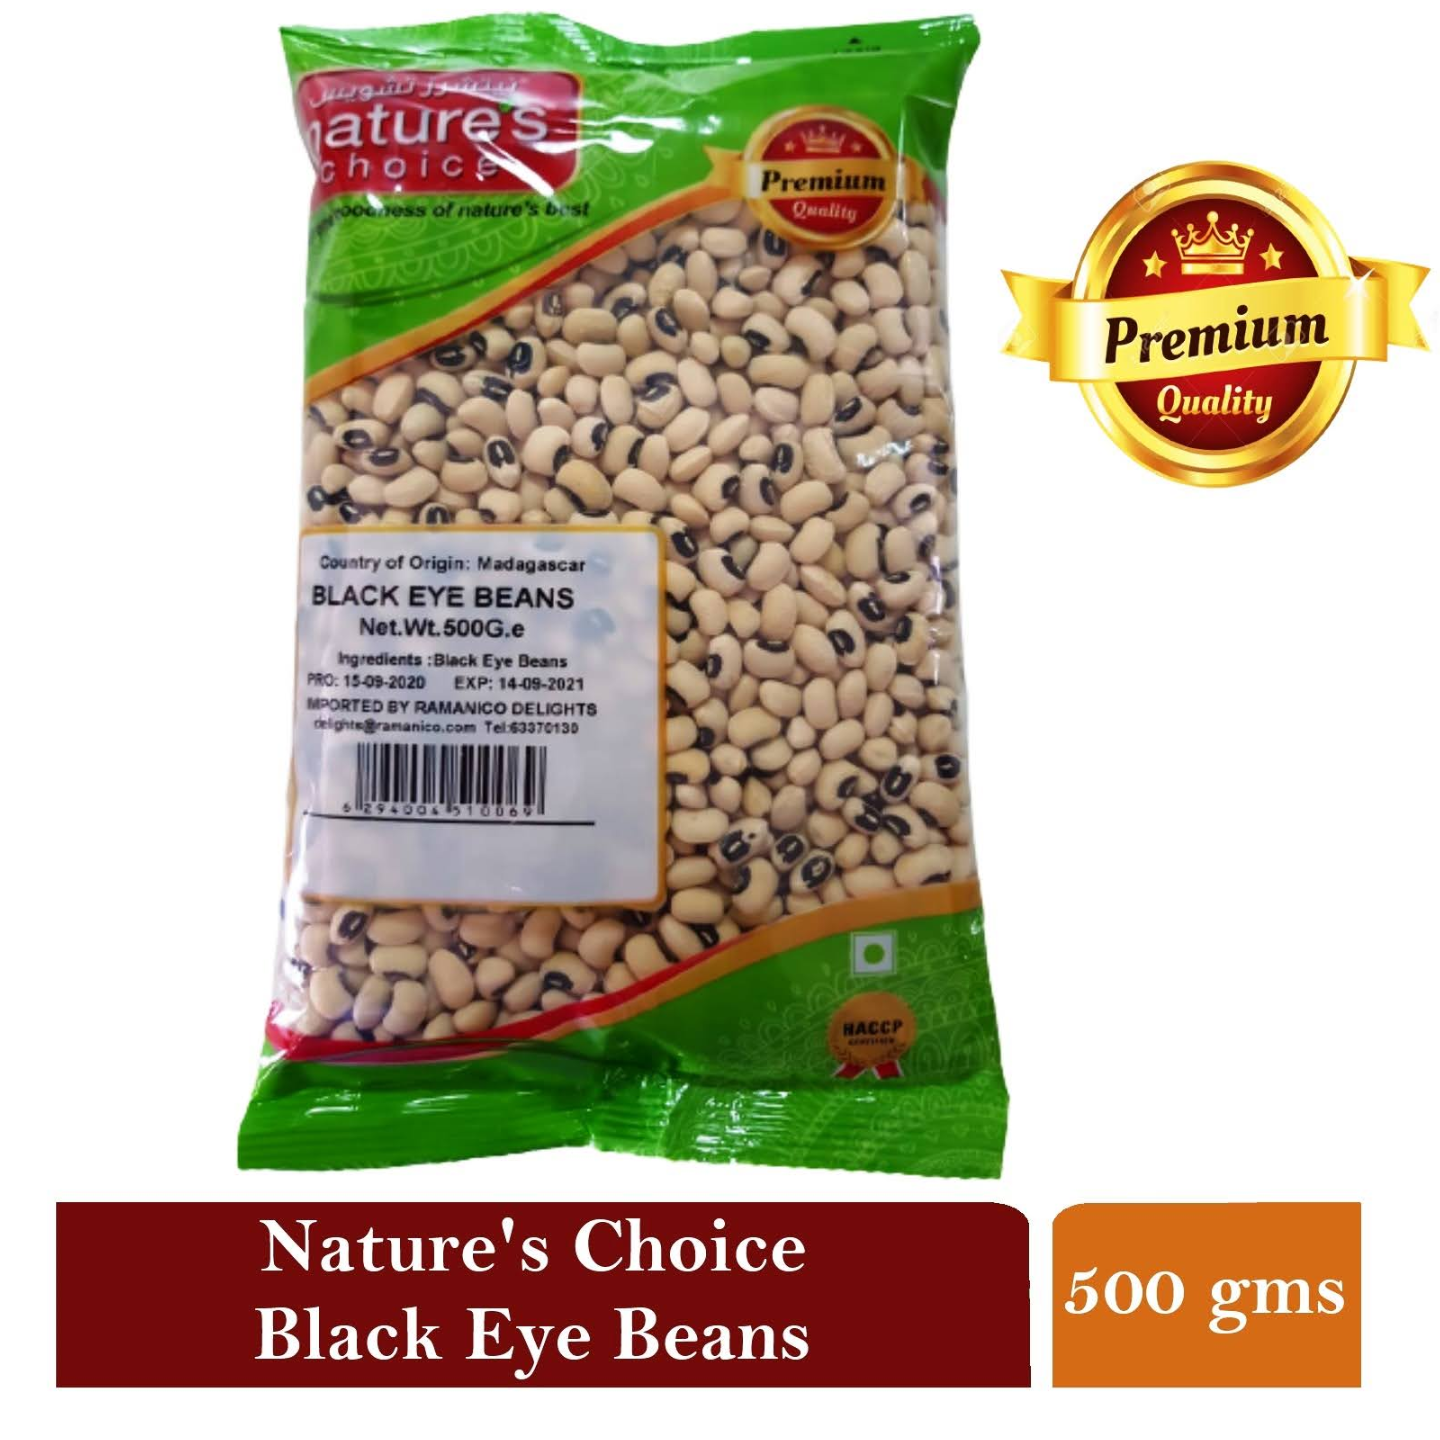 NATURE'S CHOICE PREMIUM QUALITY BLACK EYE BEAN 500G